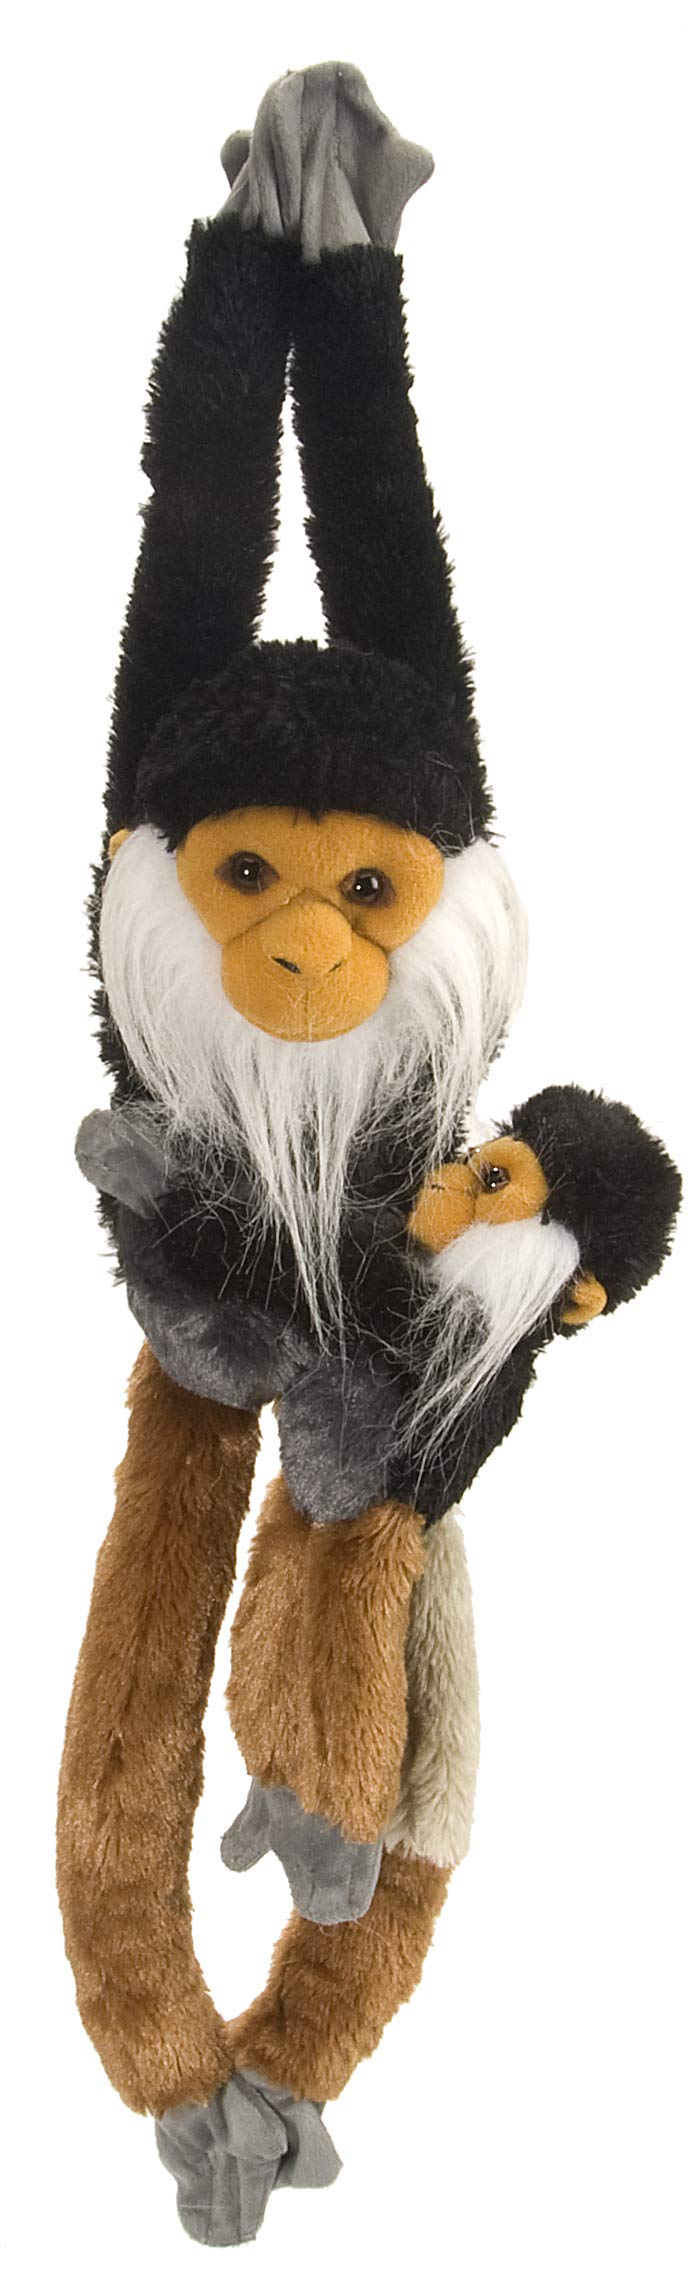 Wild Republic Douc Langur w/baby Plush, Monkey Stuffed Animal, Plush Toy, Gifts for Kids, Hanging 20 Inches